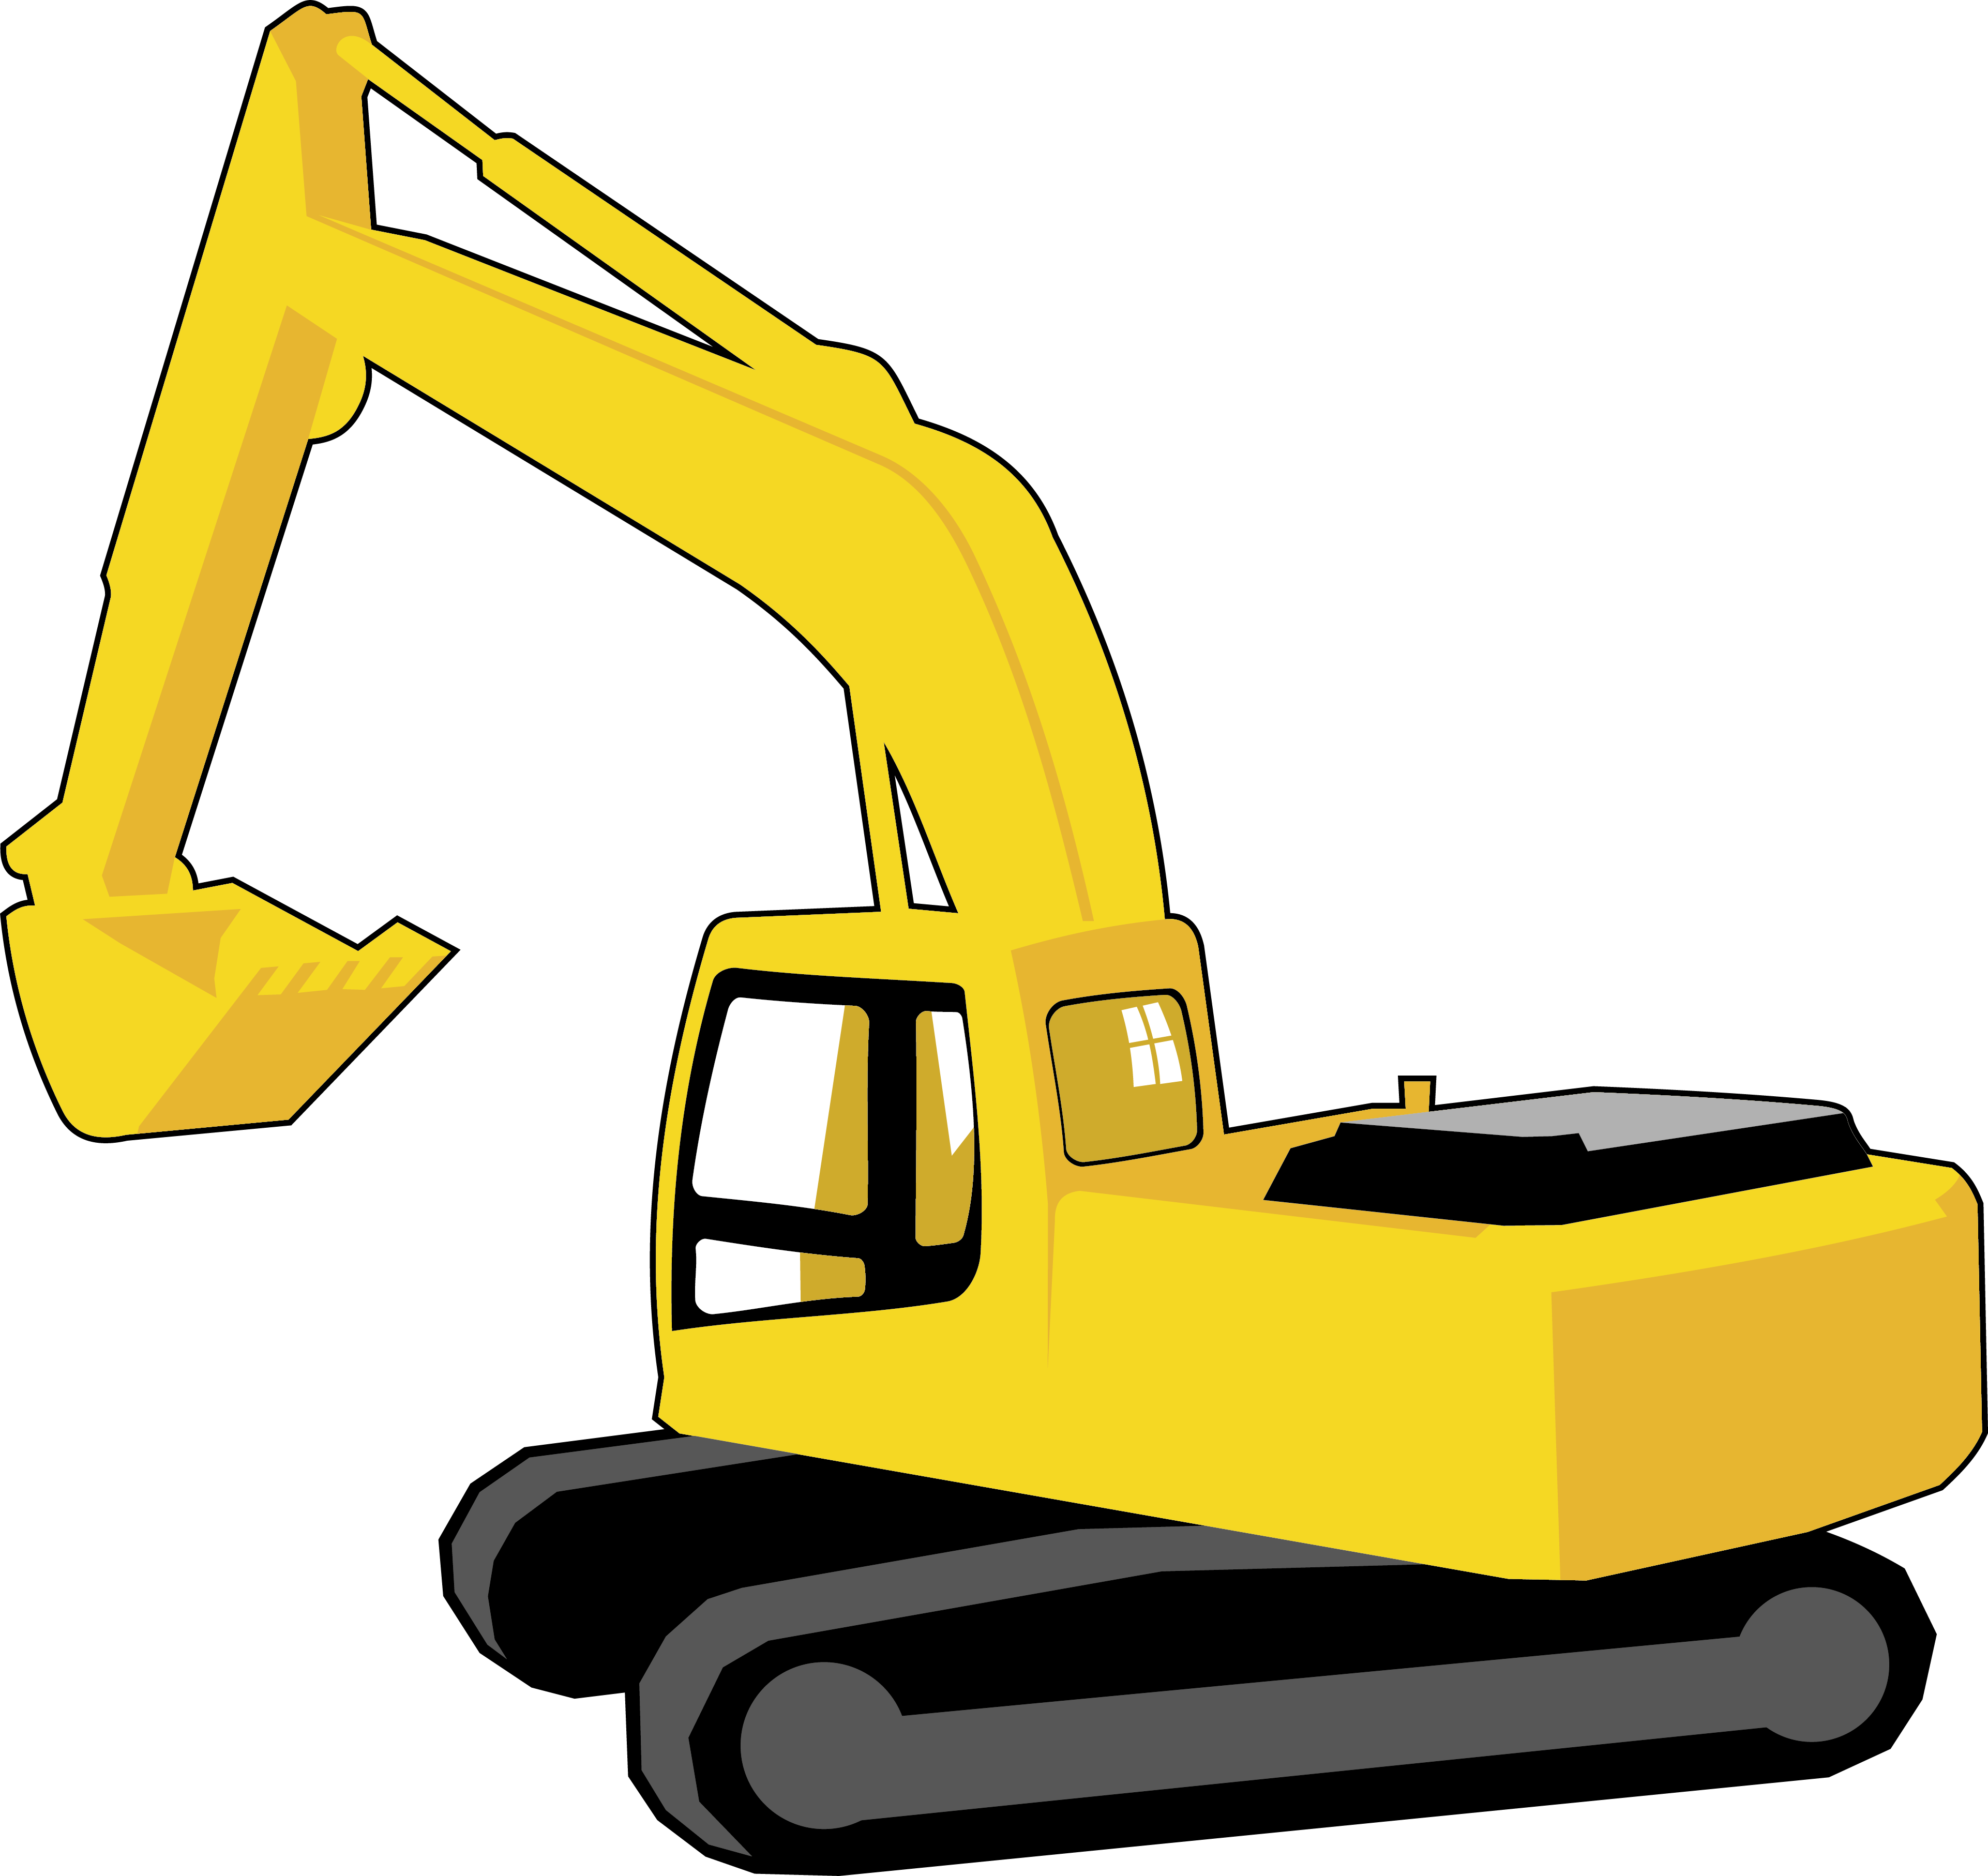 clip art black and white download Excavator Clipart at GetDrawings